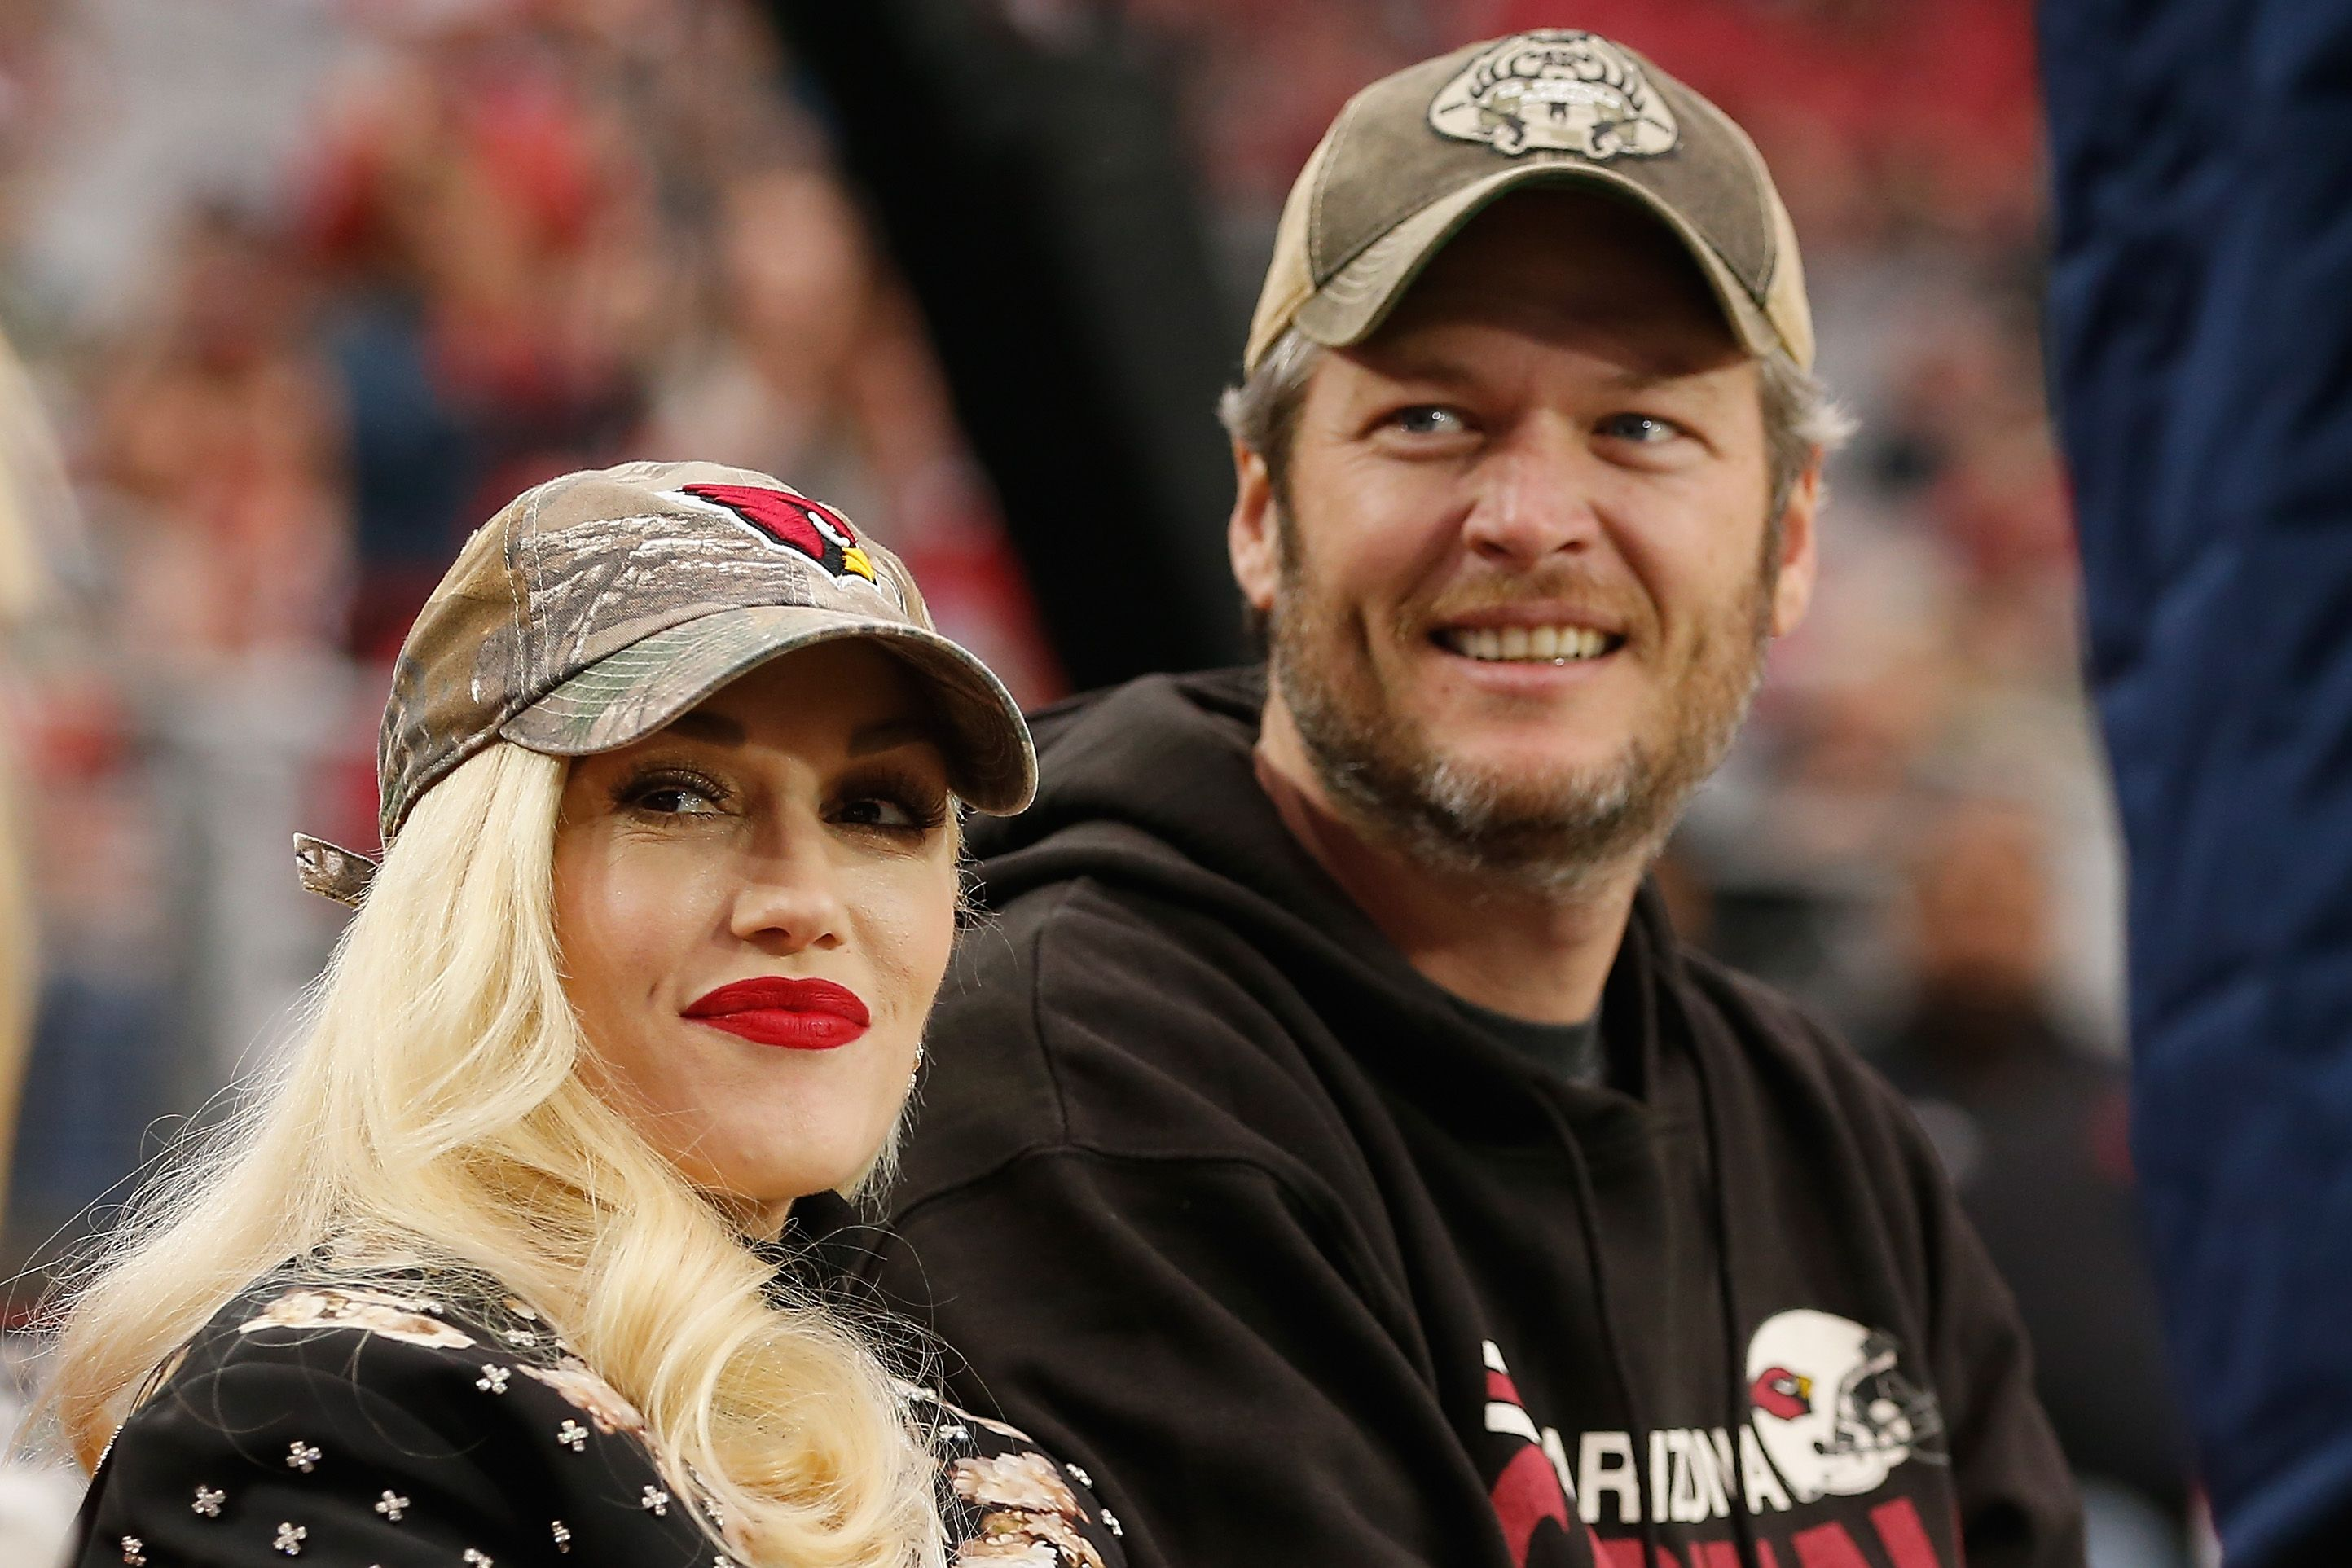 Gwen Stefani and Blake Shelton during the NFL game between the Green Bay Packers and Arizona Cardinals at the University of Phoenix Stadium on December 27, 2015 in Glendale, Arizona. | Source: Getty Images